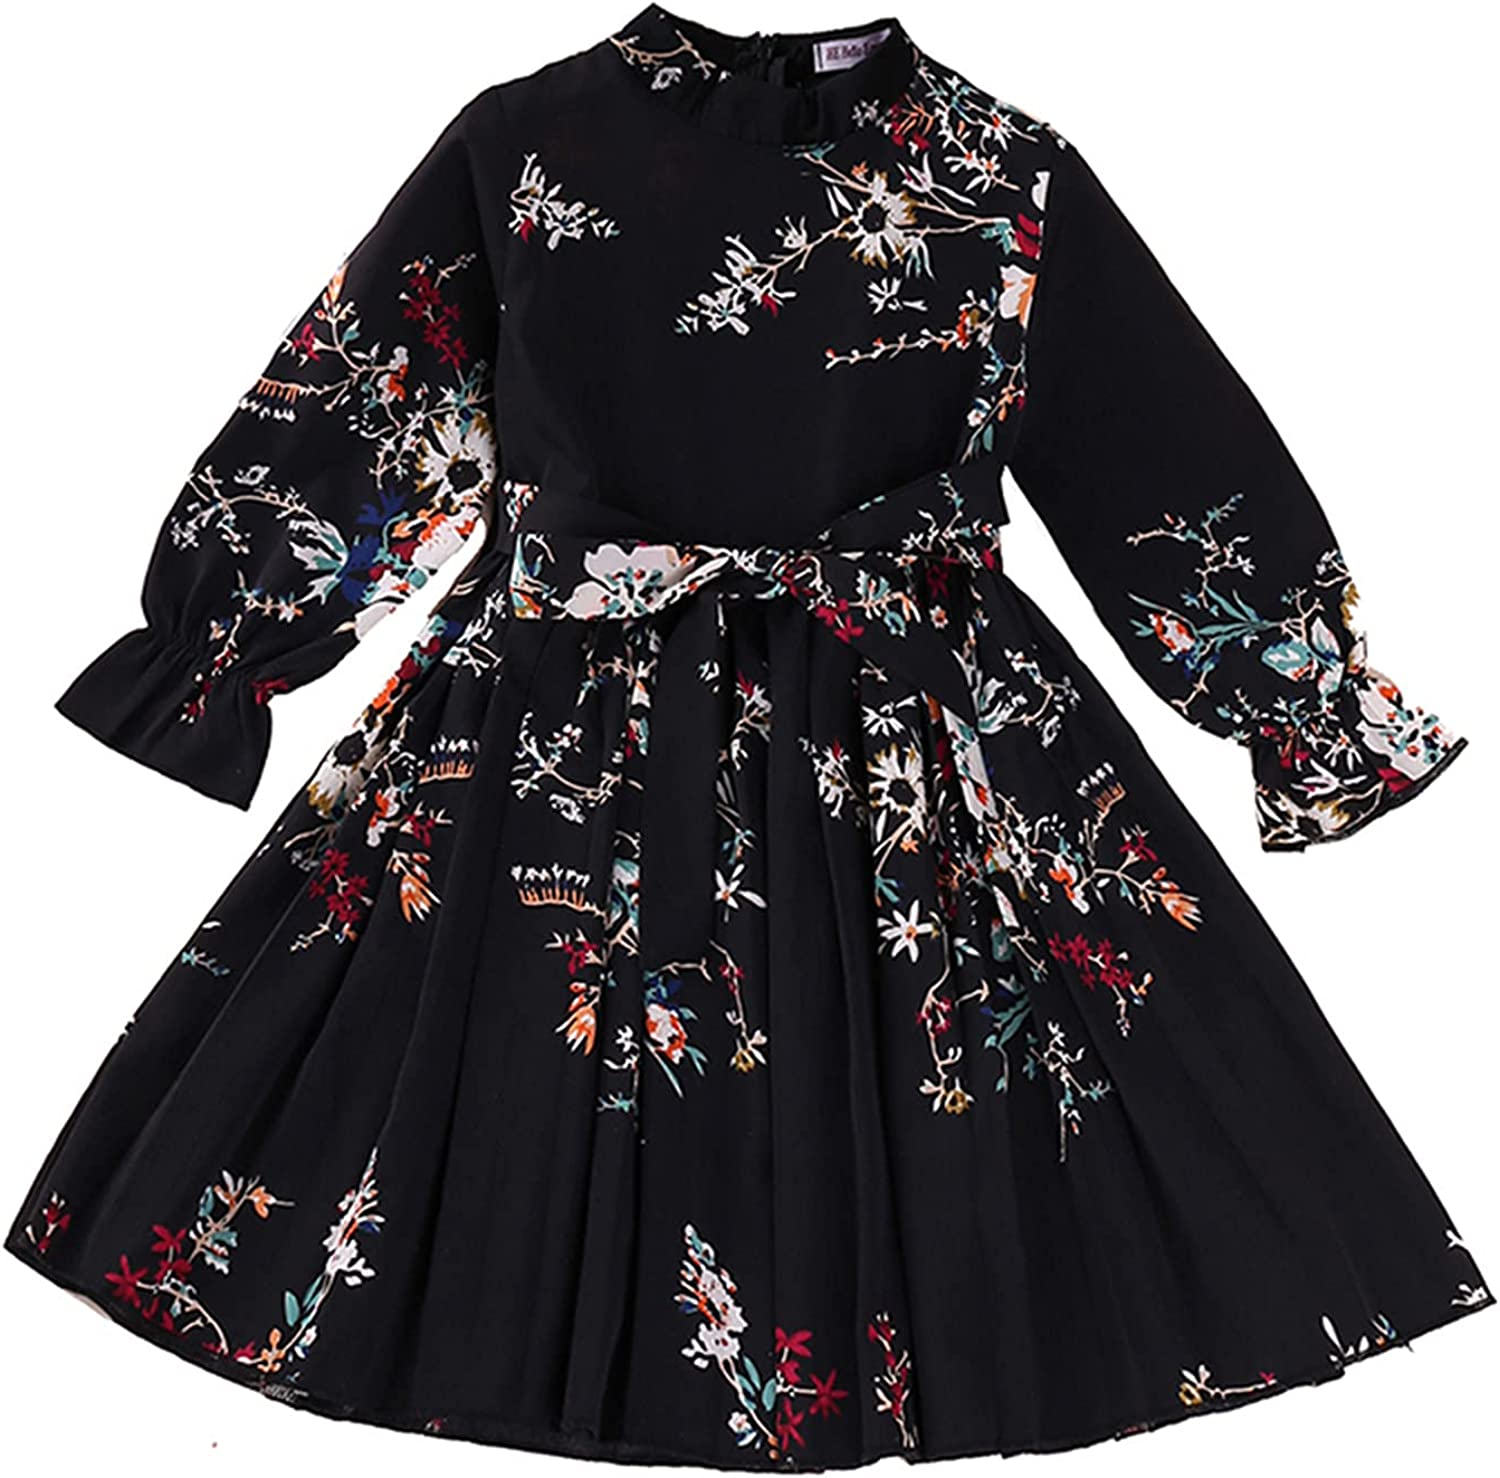 ZXCC Spring and Autumn Girls Cotton Print Dress Casual A-Line Long-Sleeved Round Neck Floral Midi Cute Dress Skirt